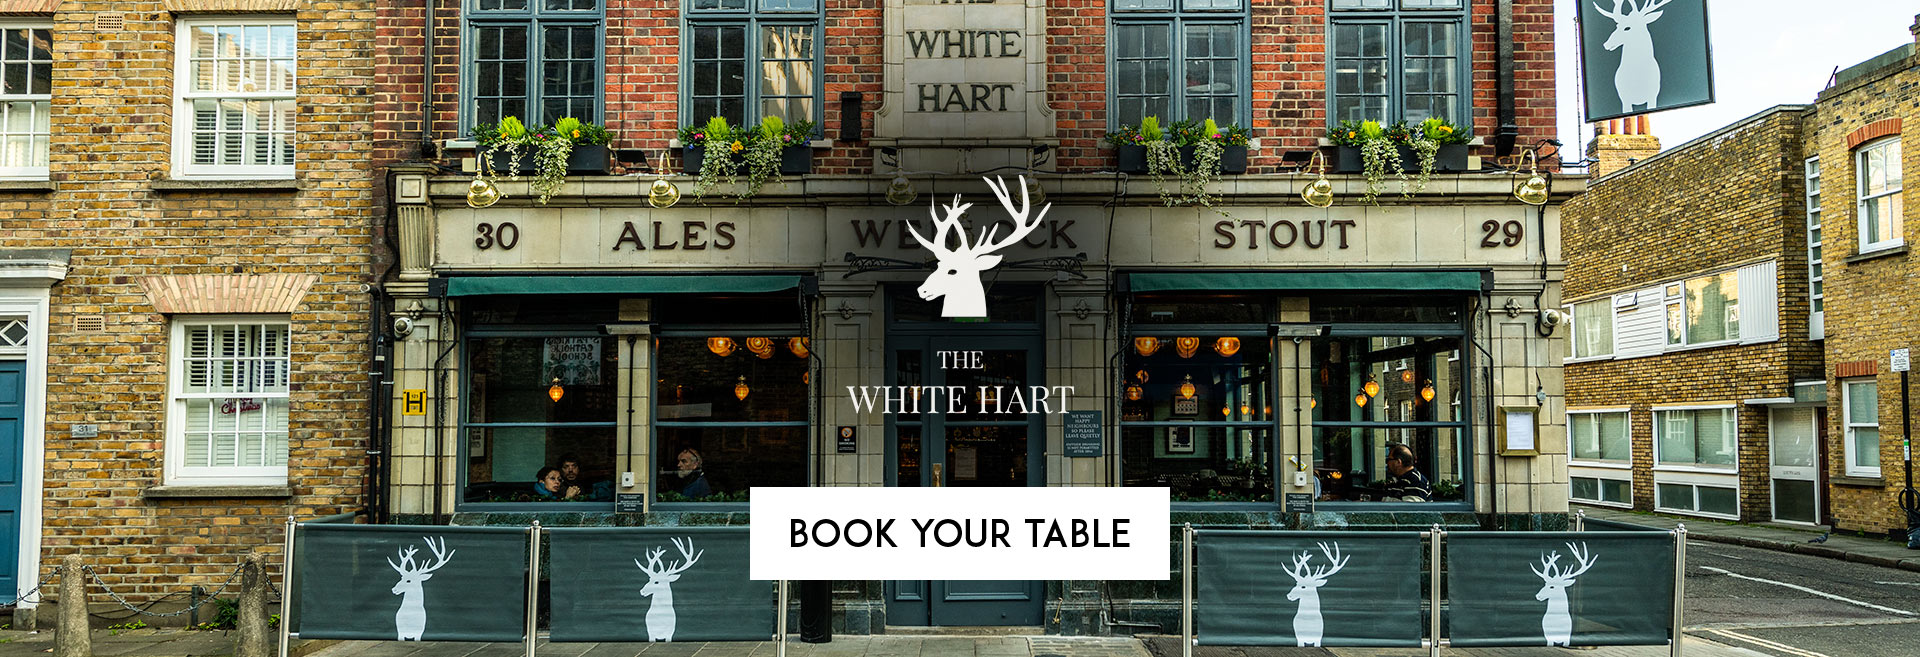 Book Your Table The White Hart